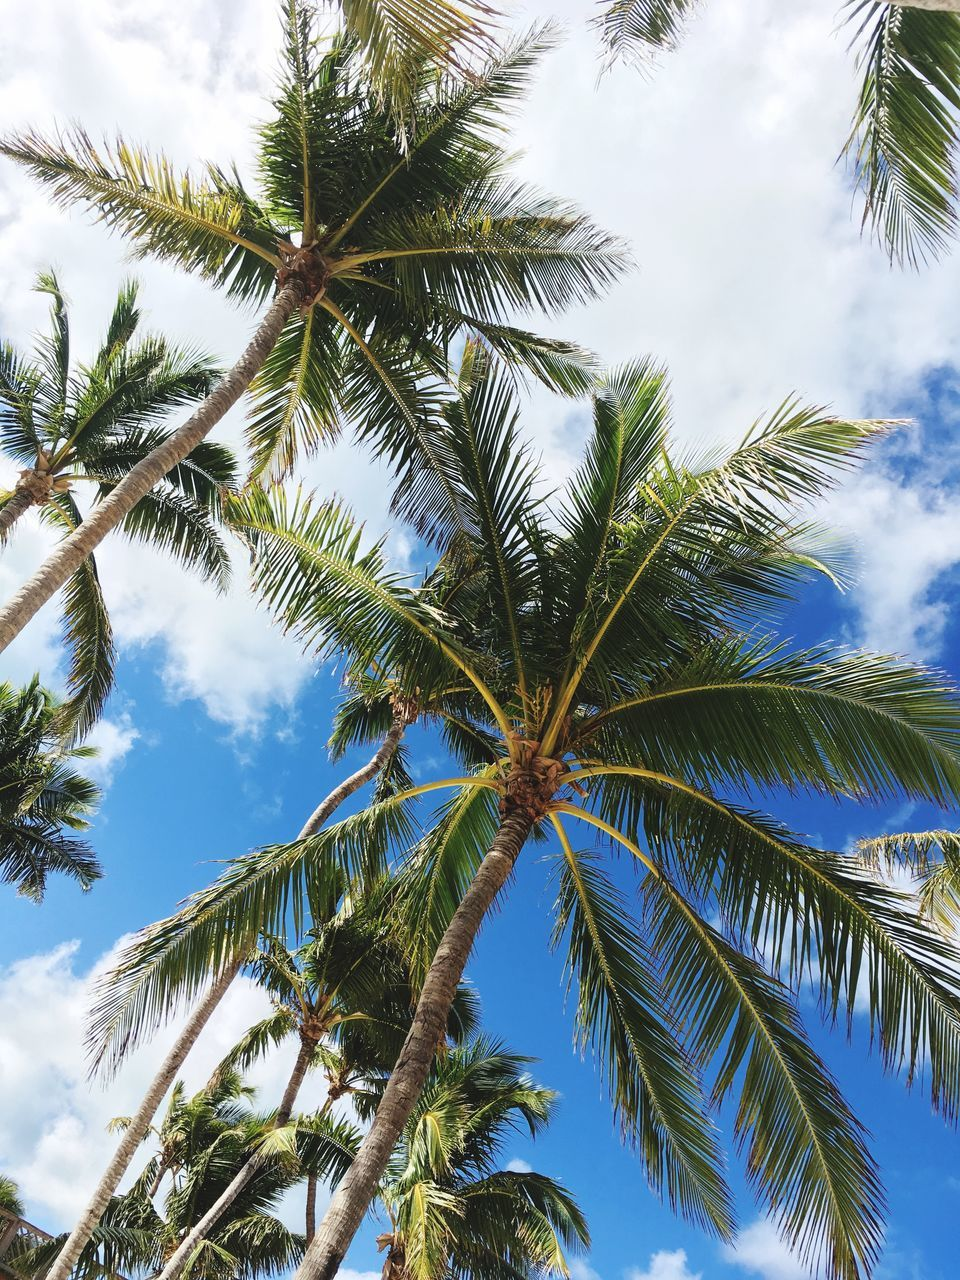 tree, palm tree, low angle view, nature, growth, sky, beauty in nature, day, leaf, no people, green color, tree trunk, outdoors, branch, scenics